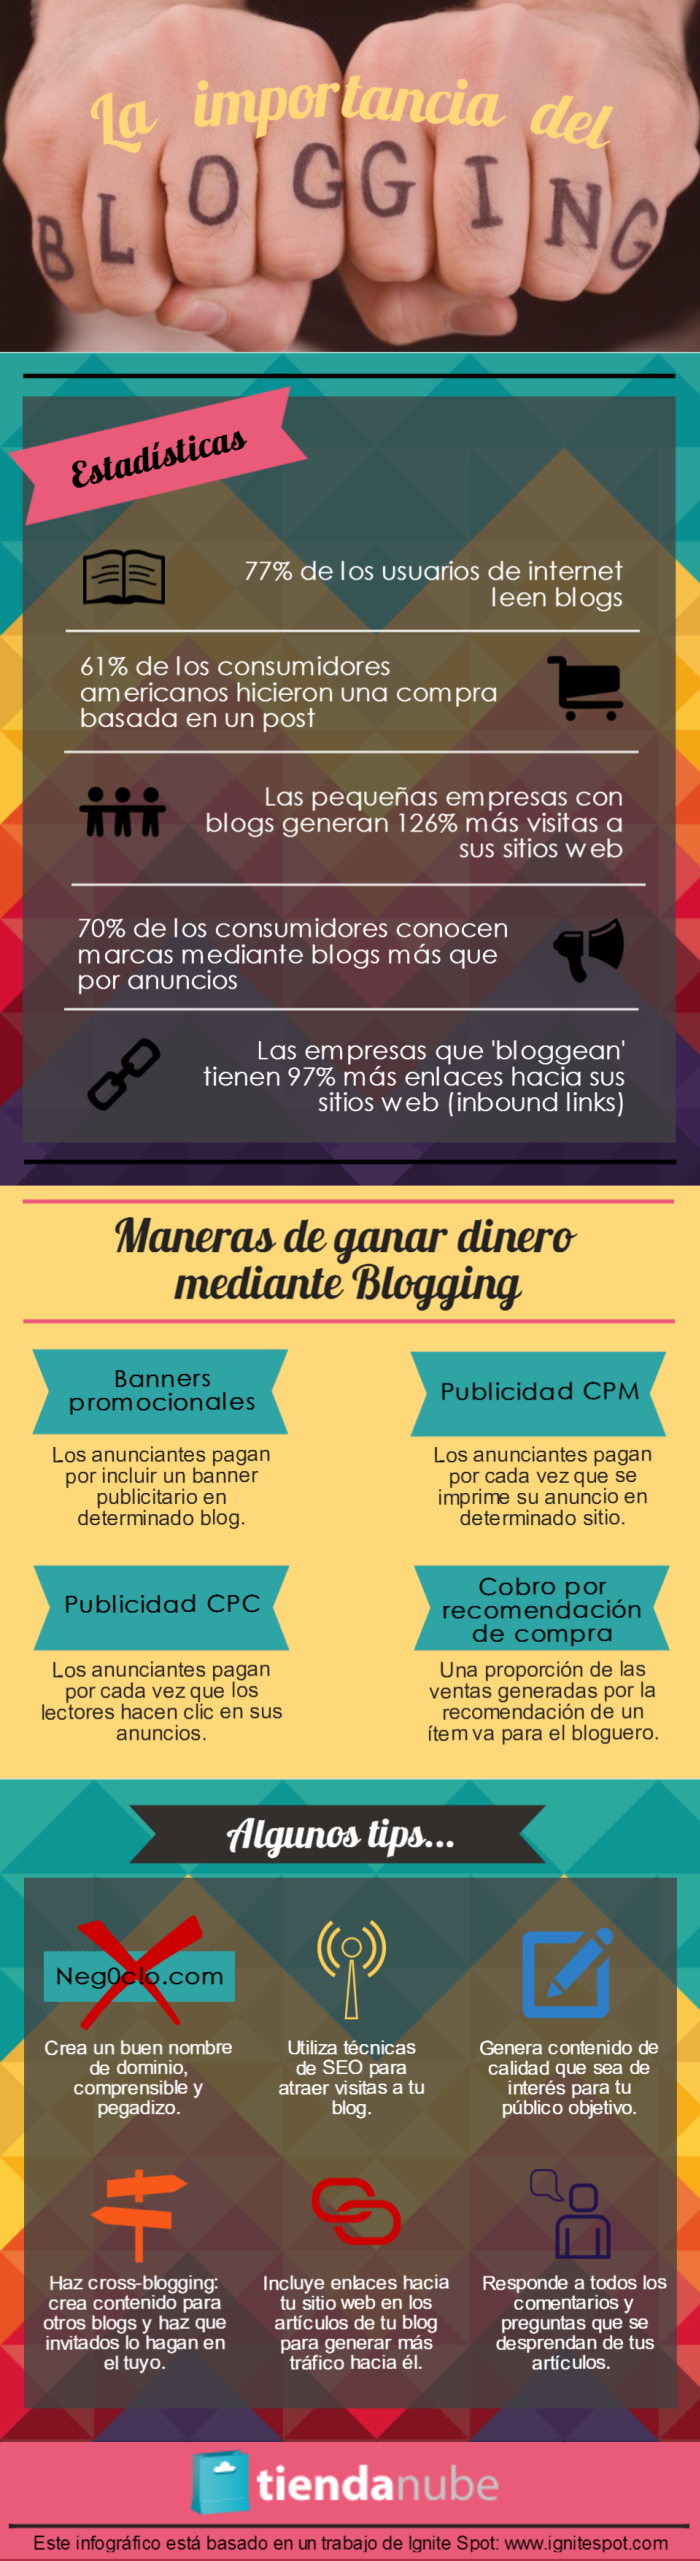 La importancia del Blogging